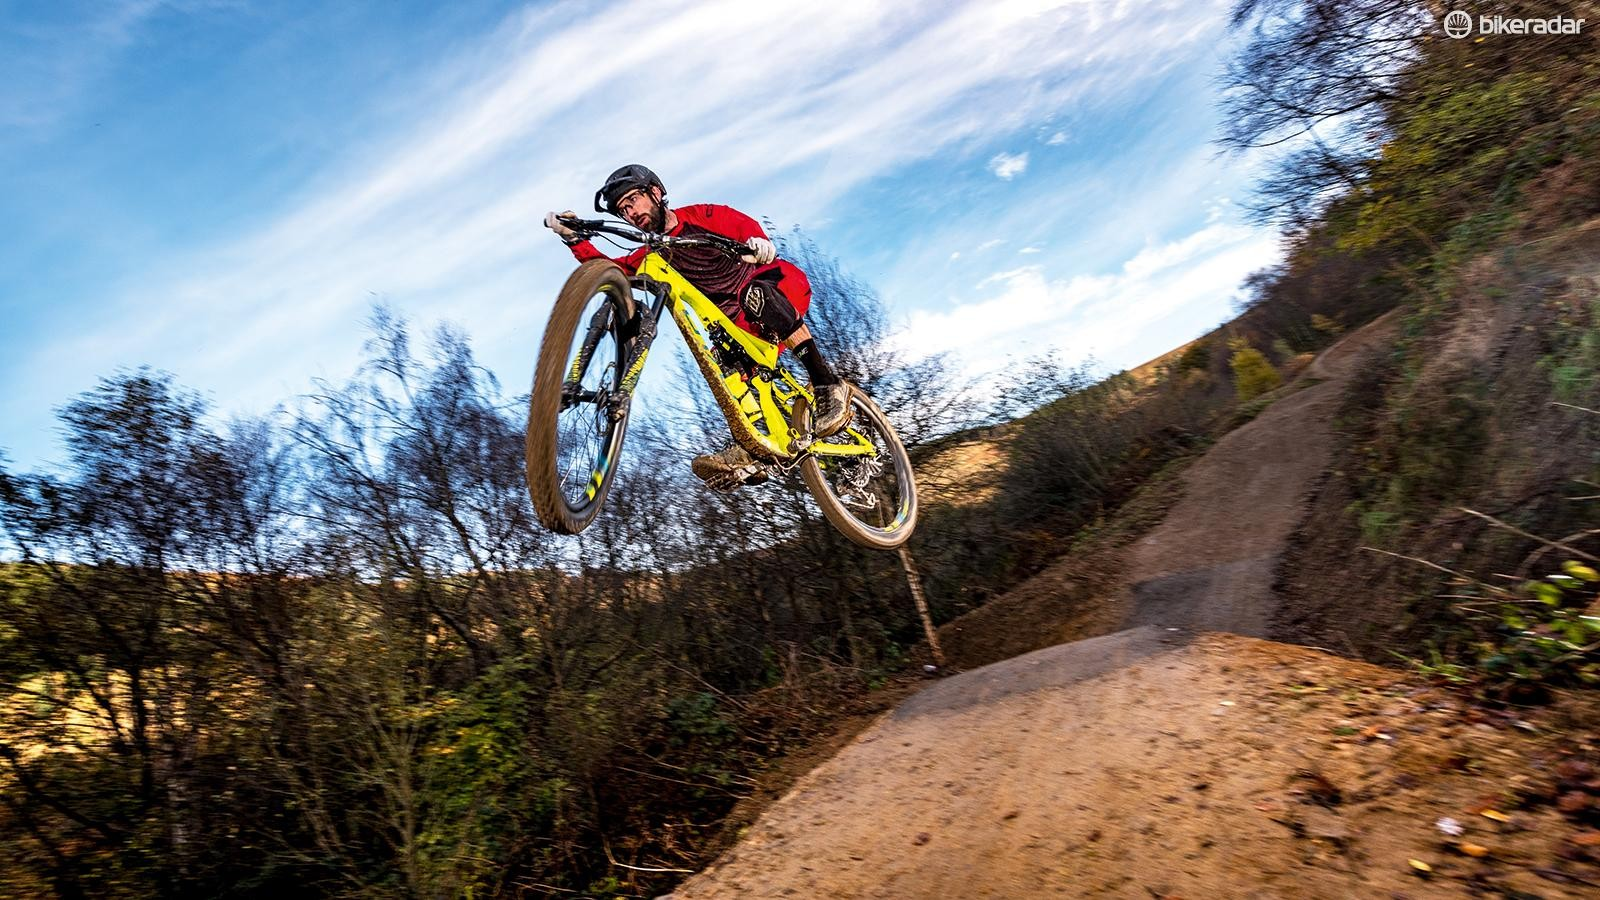 A super-capable bike that's fun to ride